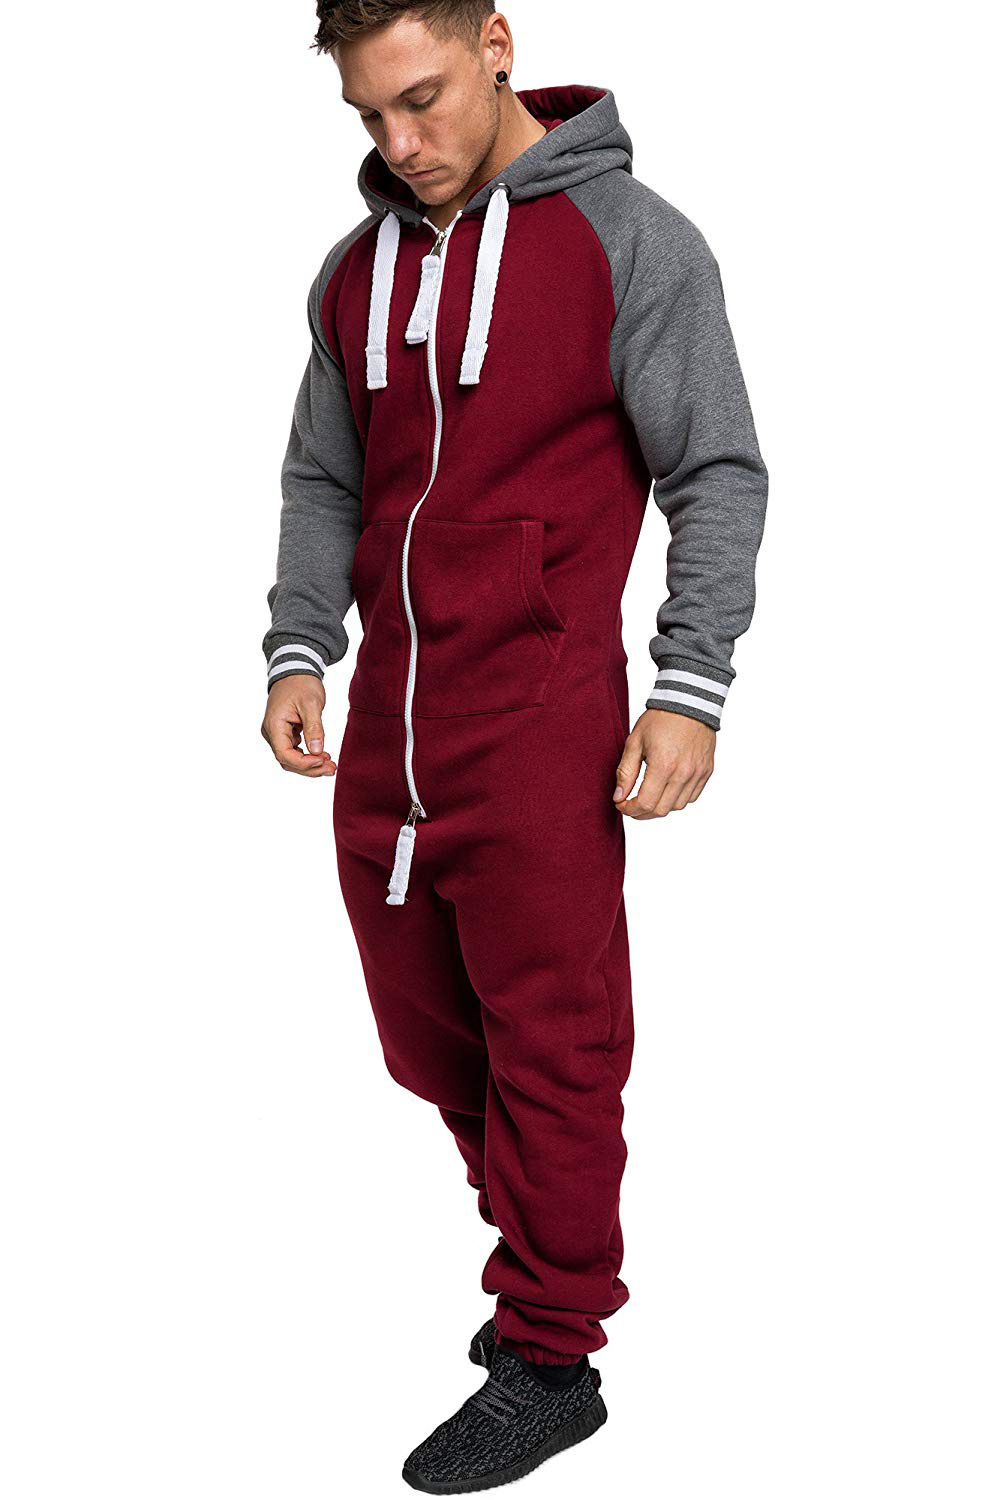 Casual Autumn Hooded Tracksuit Jumpsuit Long Pants Romper For Male Mens Fleece warm Overalls Sweatshirts Male Streetwear X9126 17